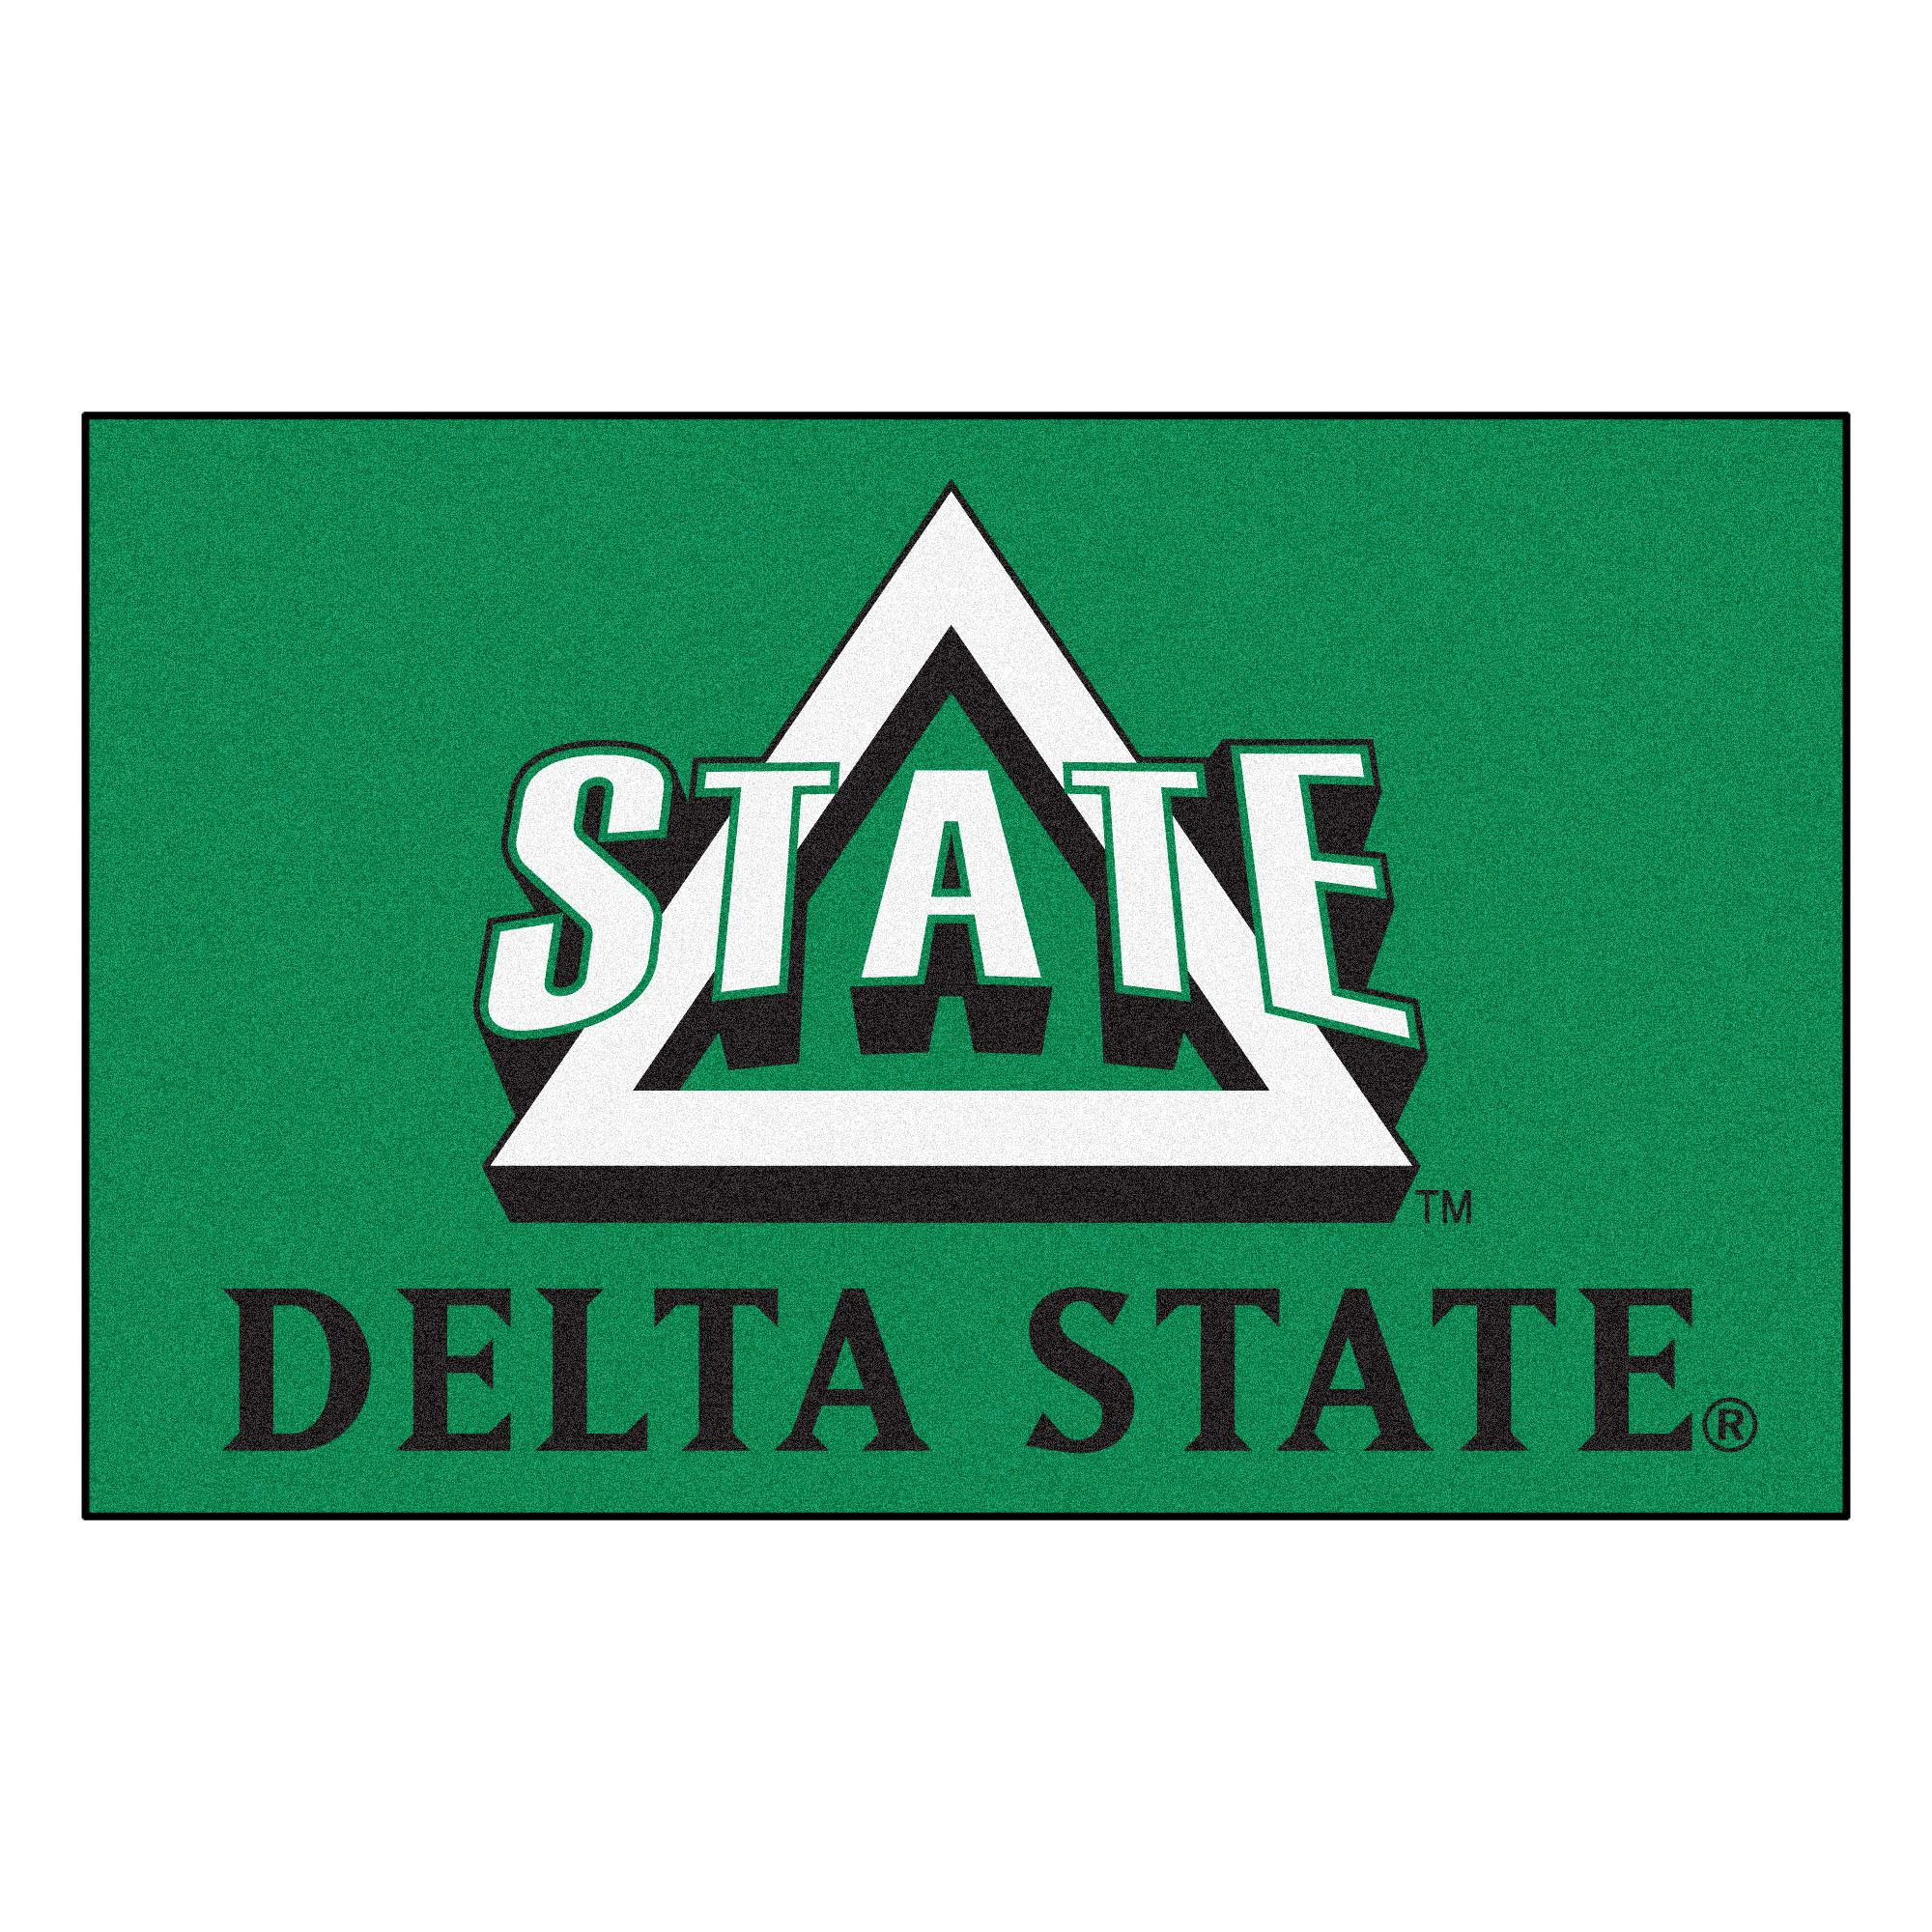 Delta State University Delta State University Ulti-Mat 60u0026quot;96u0026quot; by OJ Commerce 14135 - $119.99